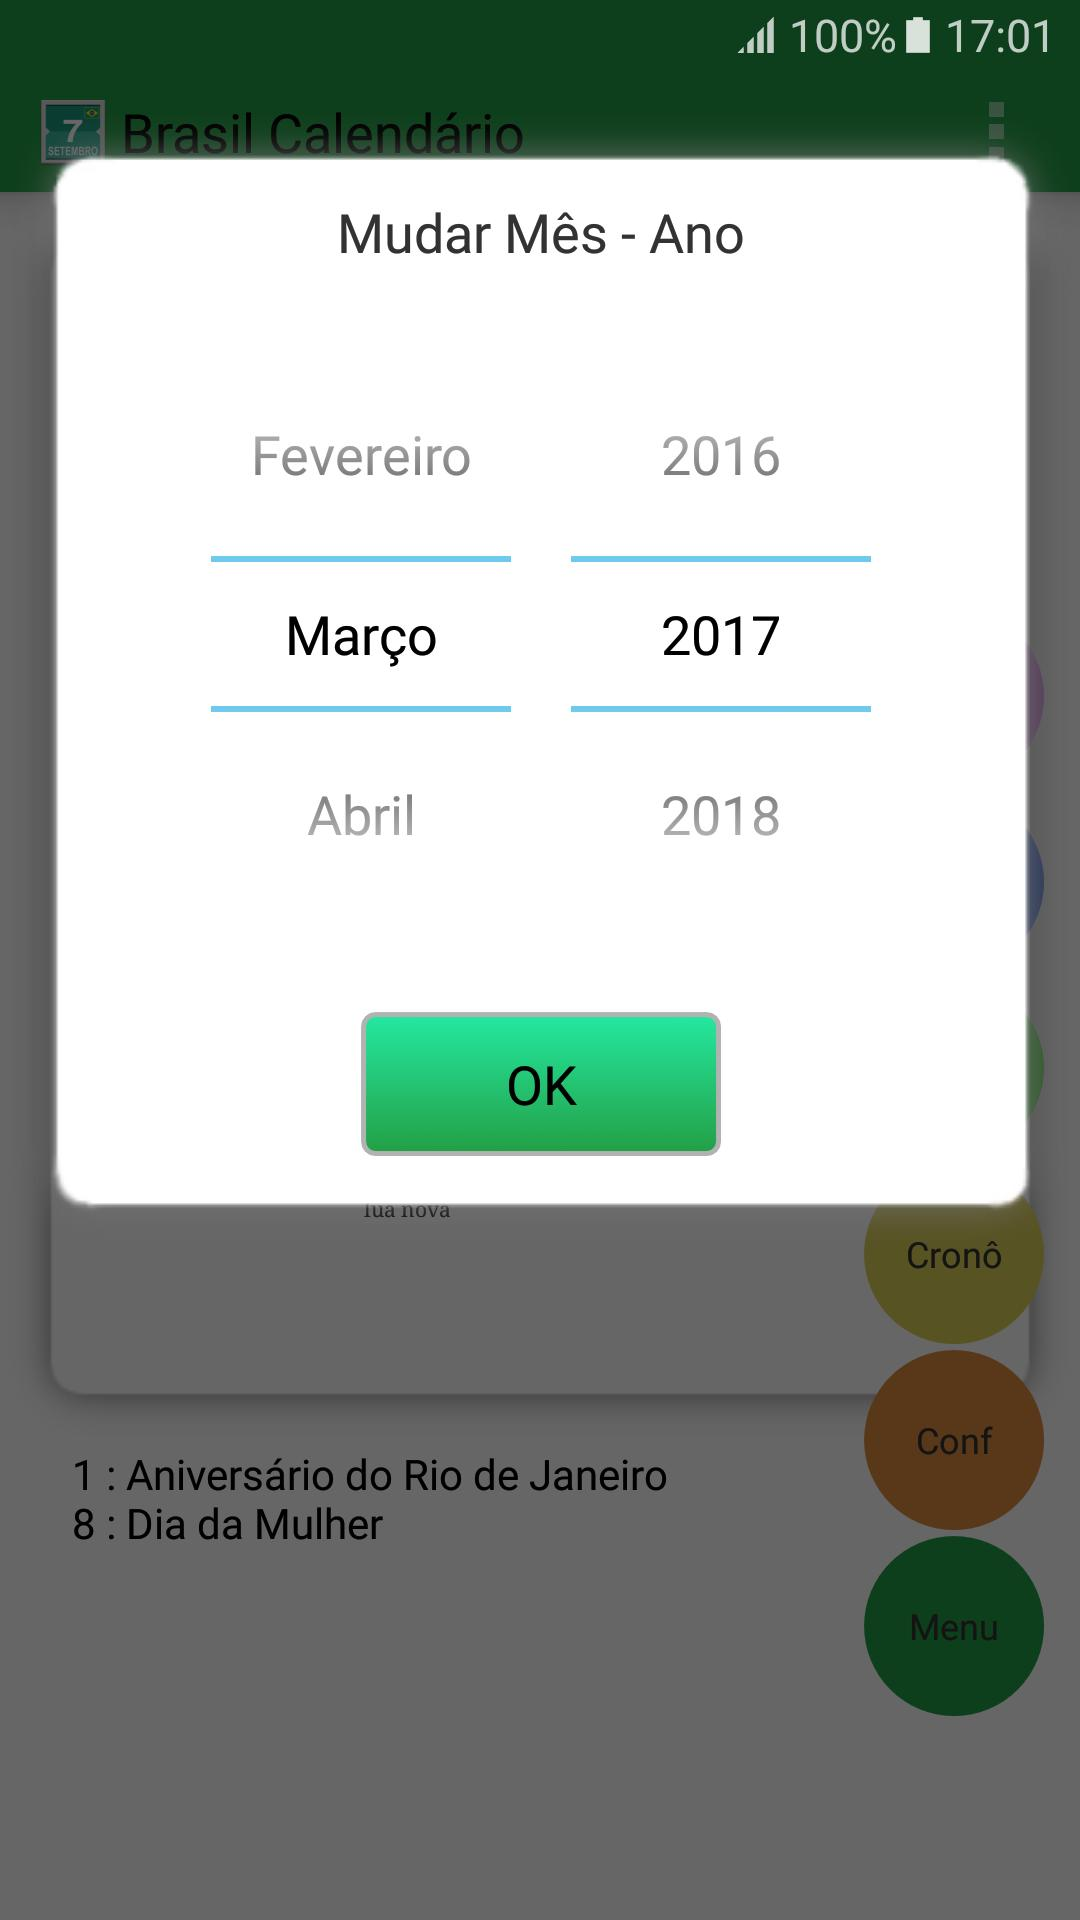 Calendario 2017 Brasil.Brasil Calendario For Android Apk Download